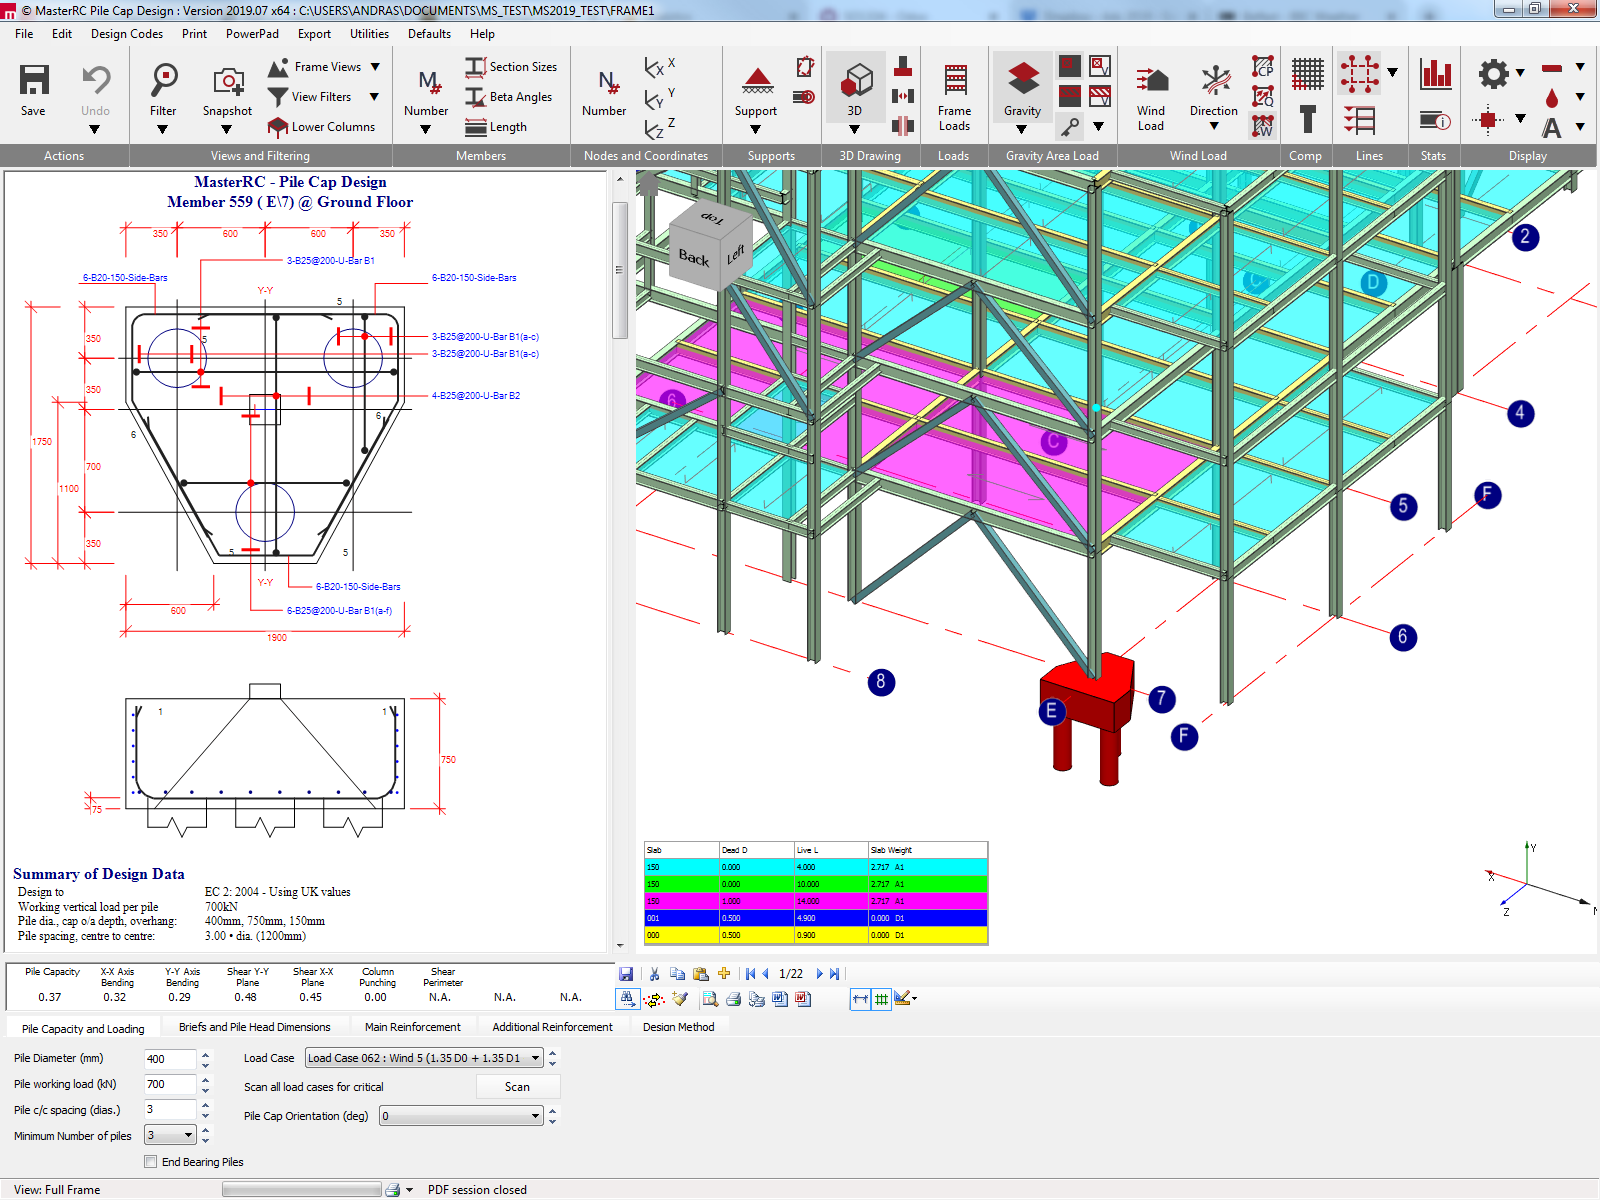 Integrated pile cap analysis and design in MasterFrame